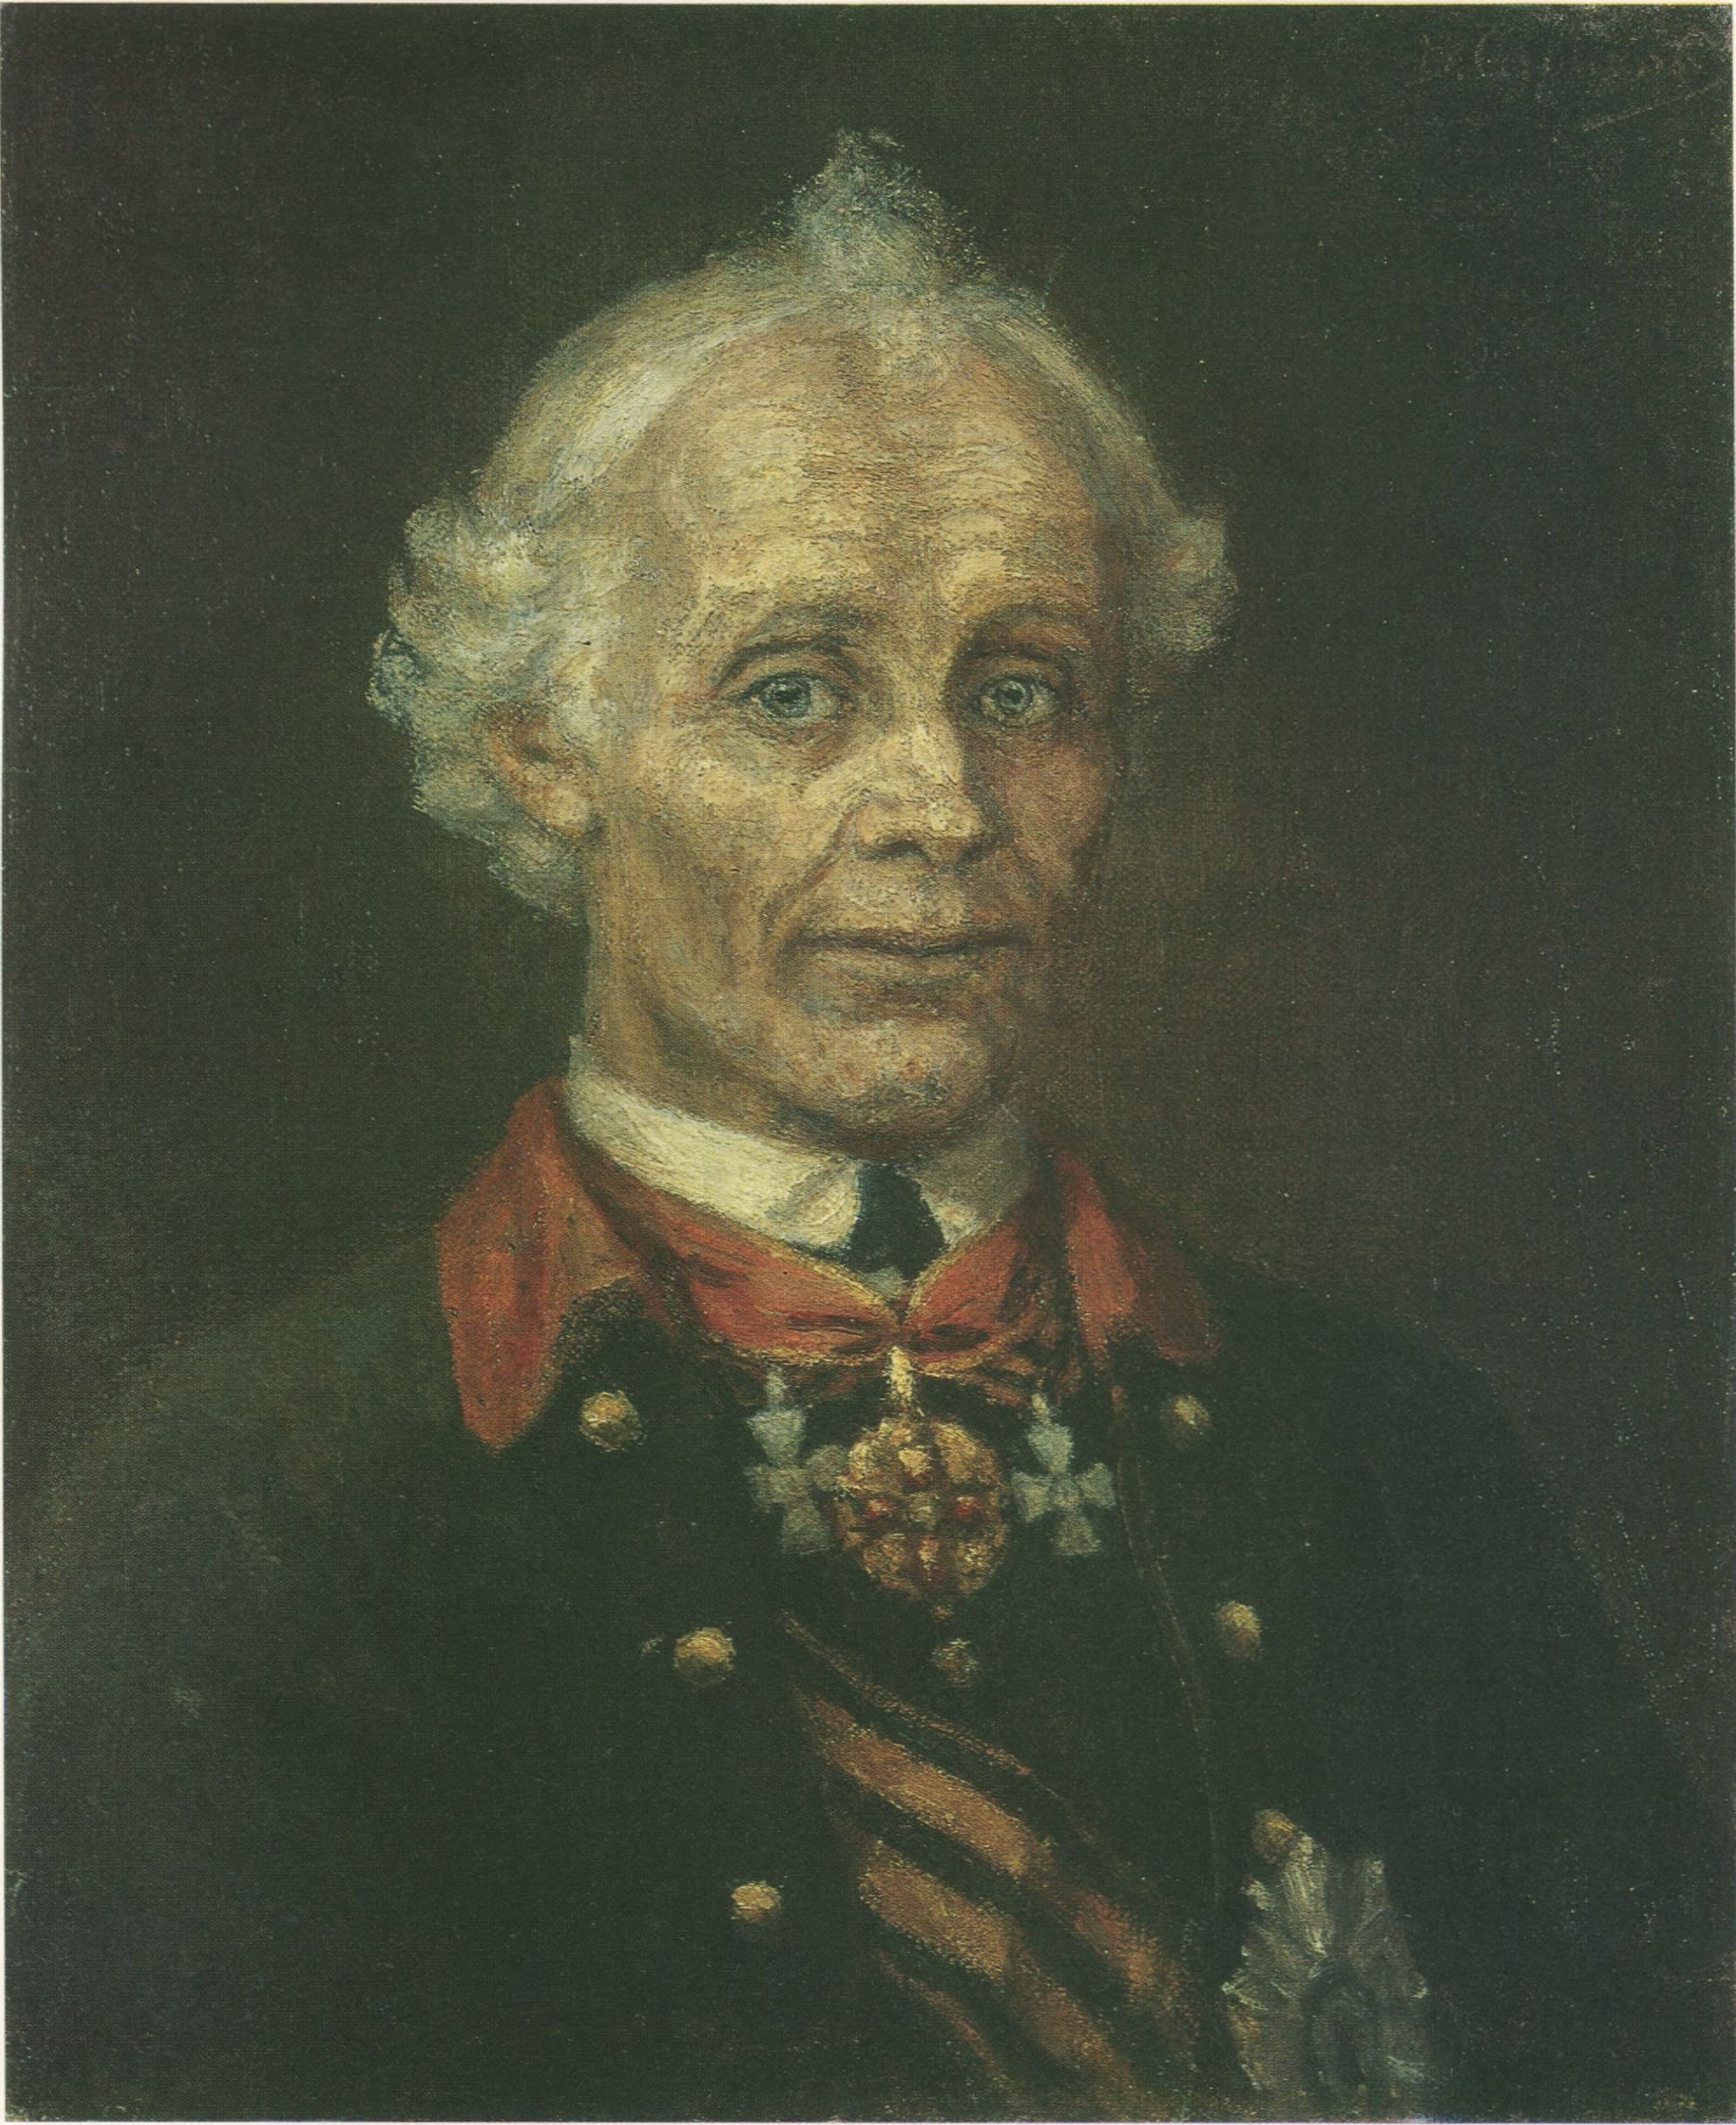 65. Портрет А.В. Суворова. 1907 (Portrait of Alexander Suvorov. 1907)